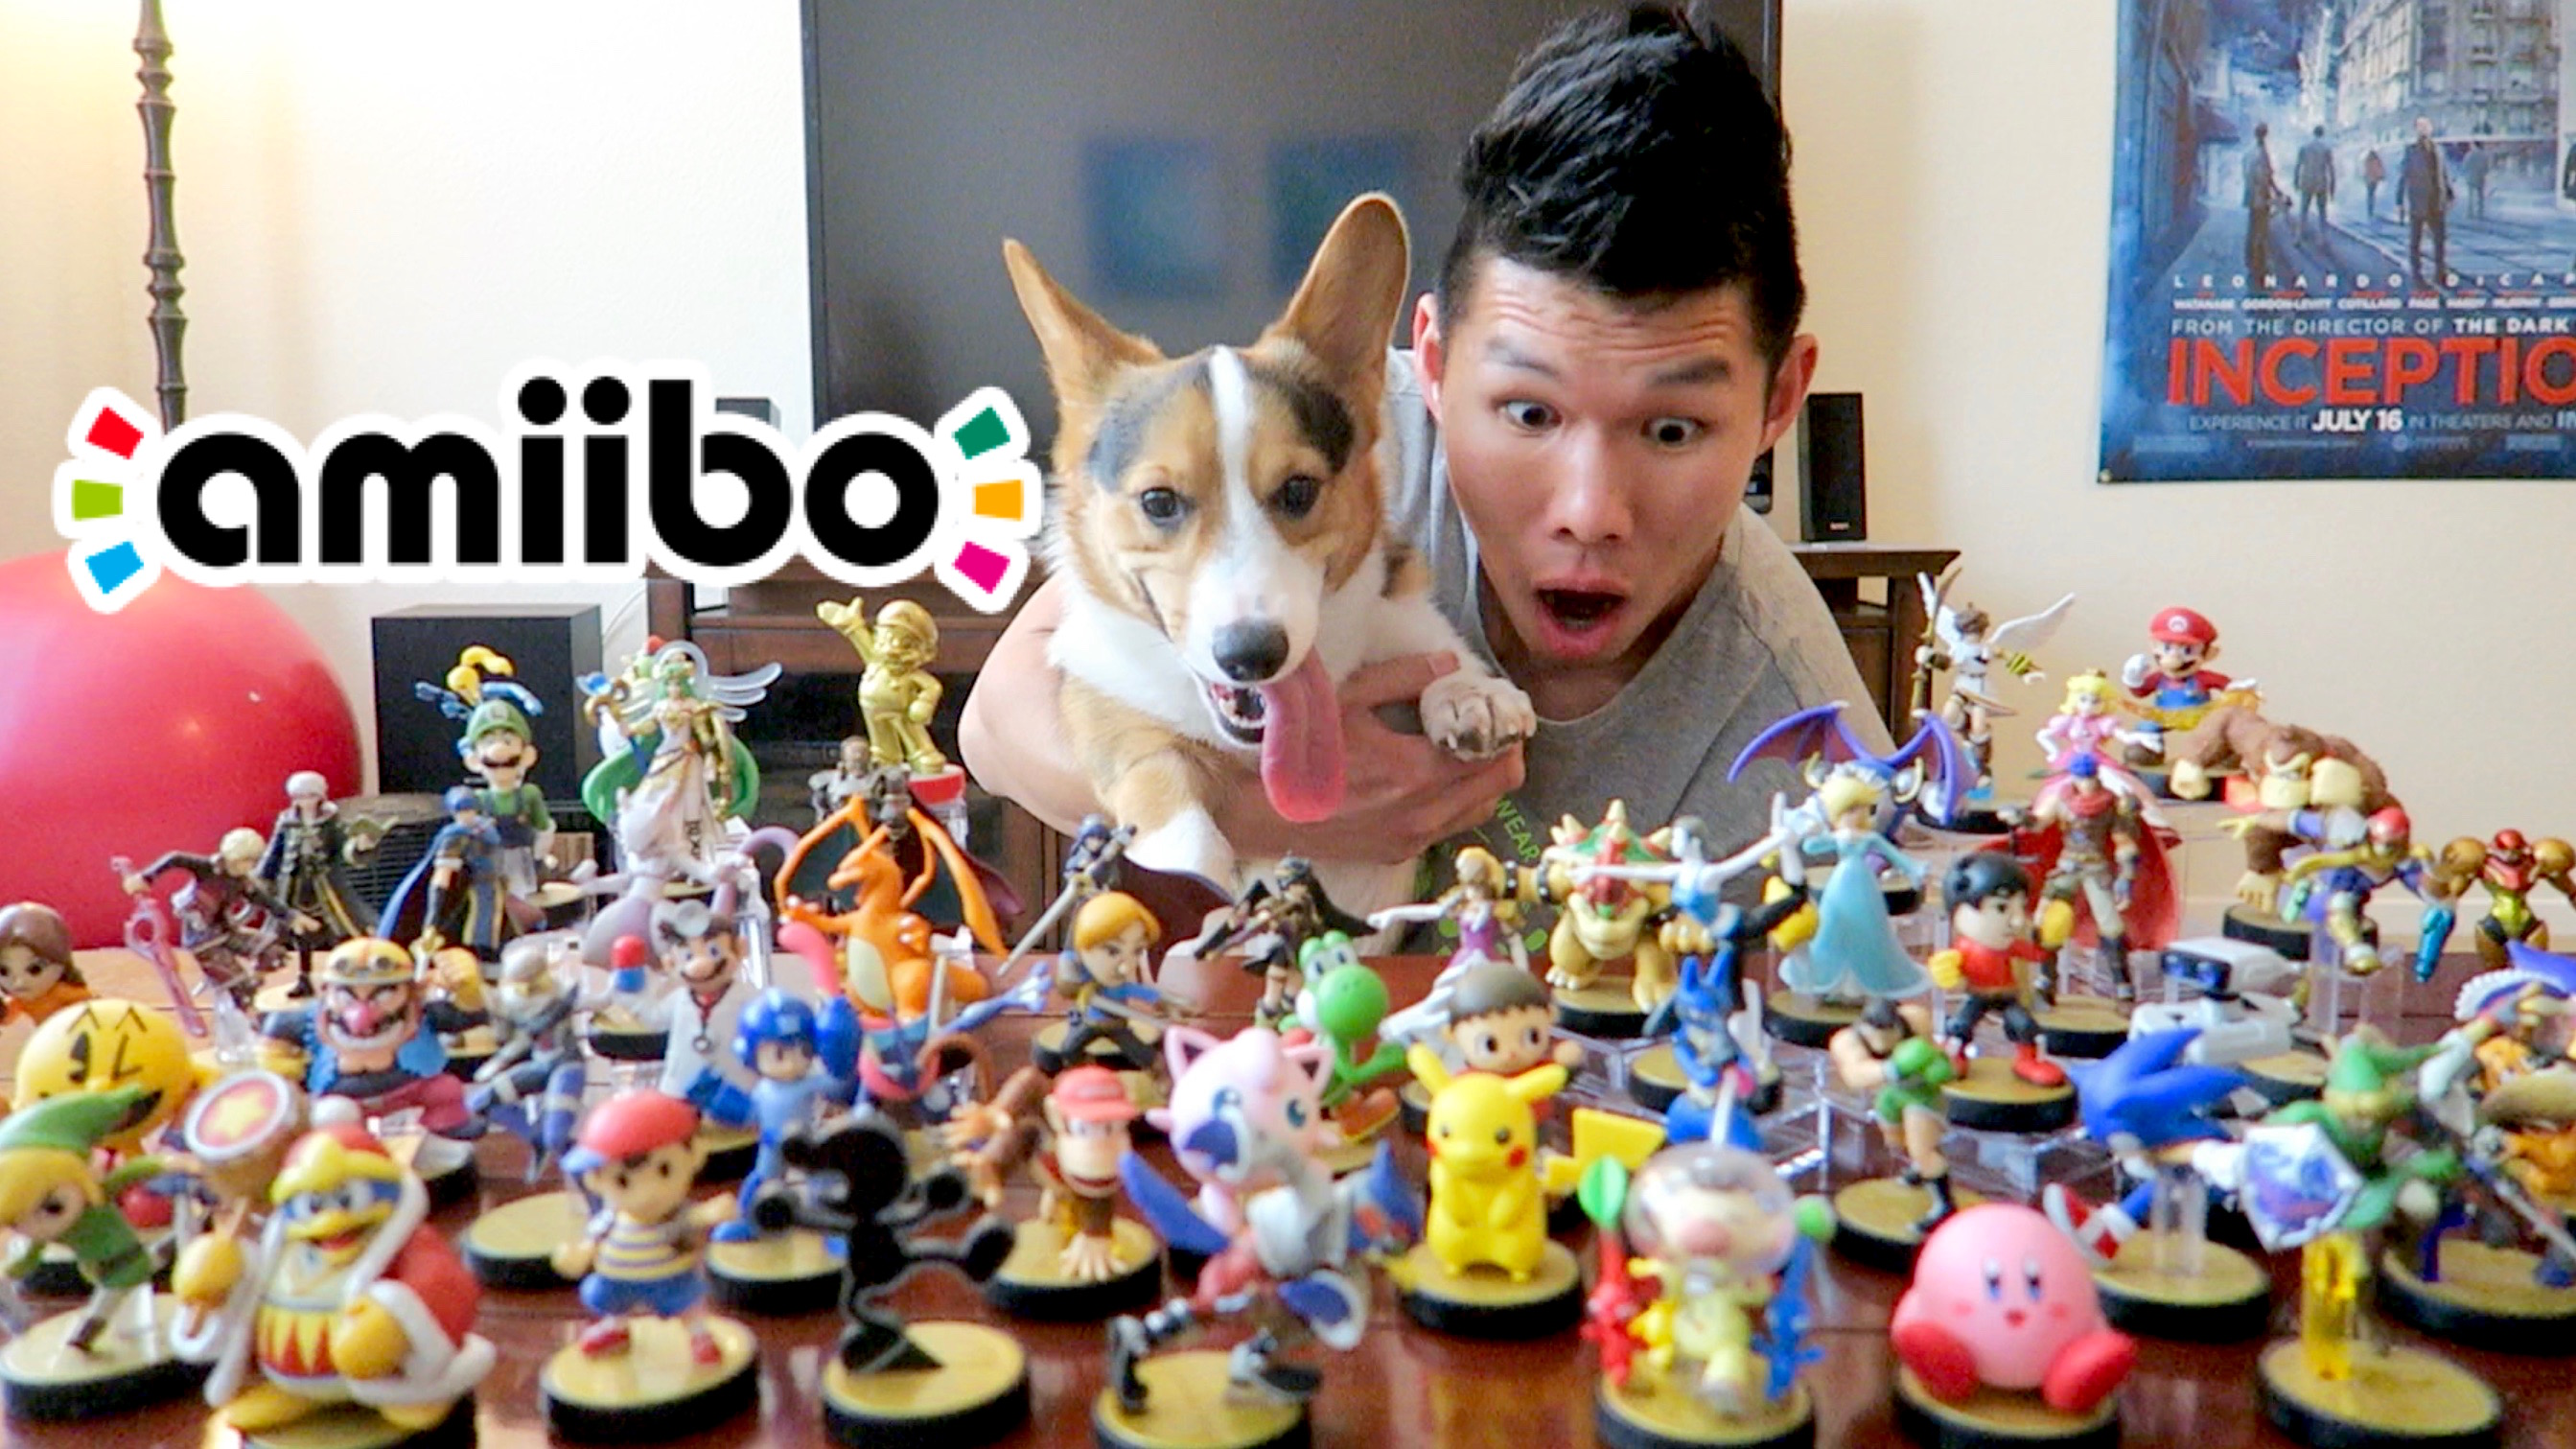 MISSION COMPLETE: CORGI DOG'S SUPER AMIIBO COLLECTION